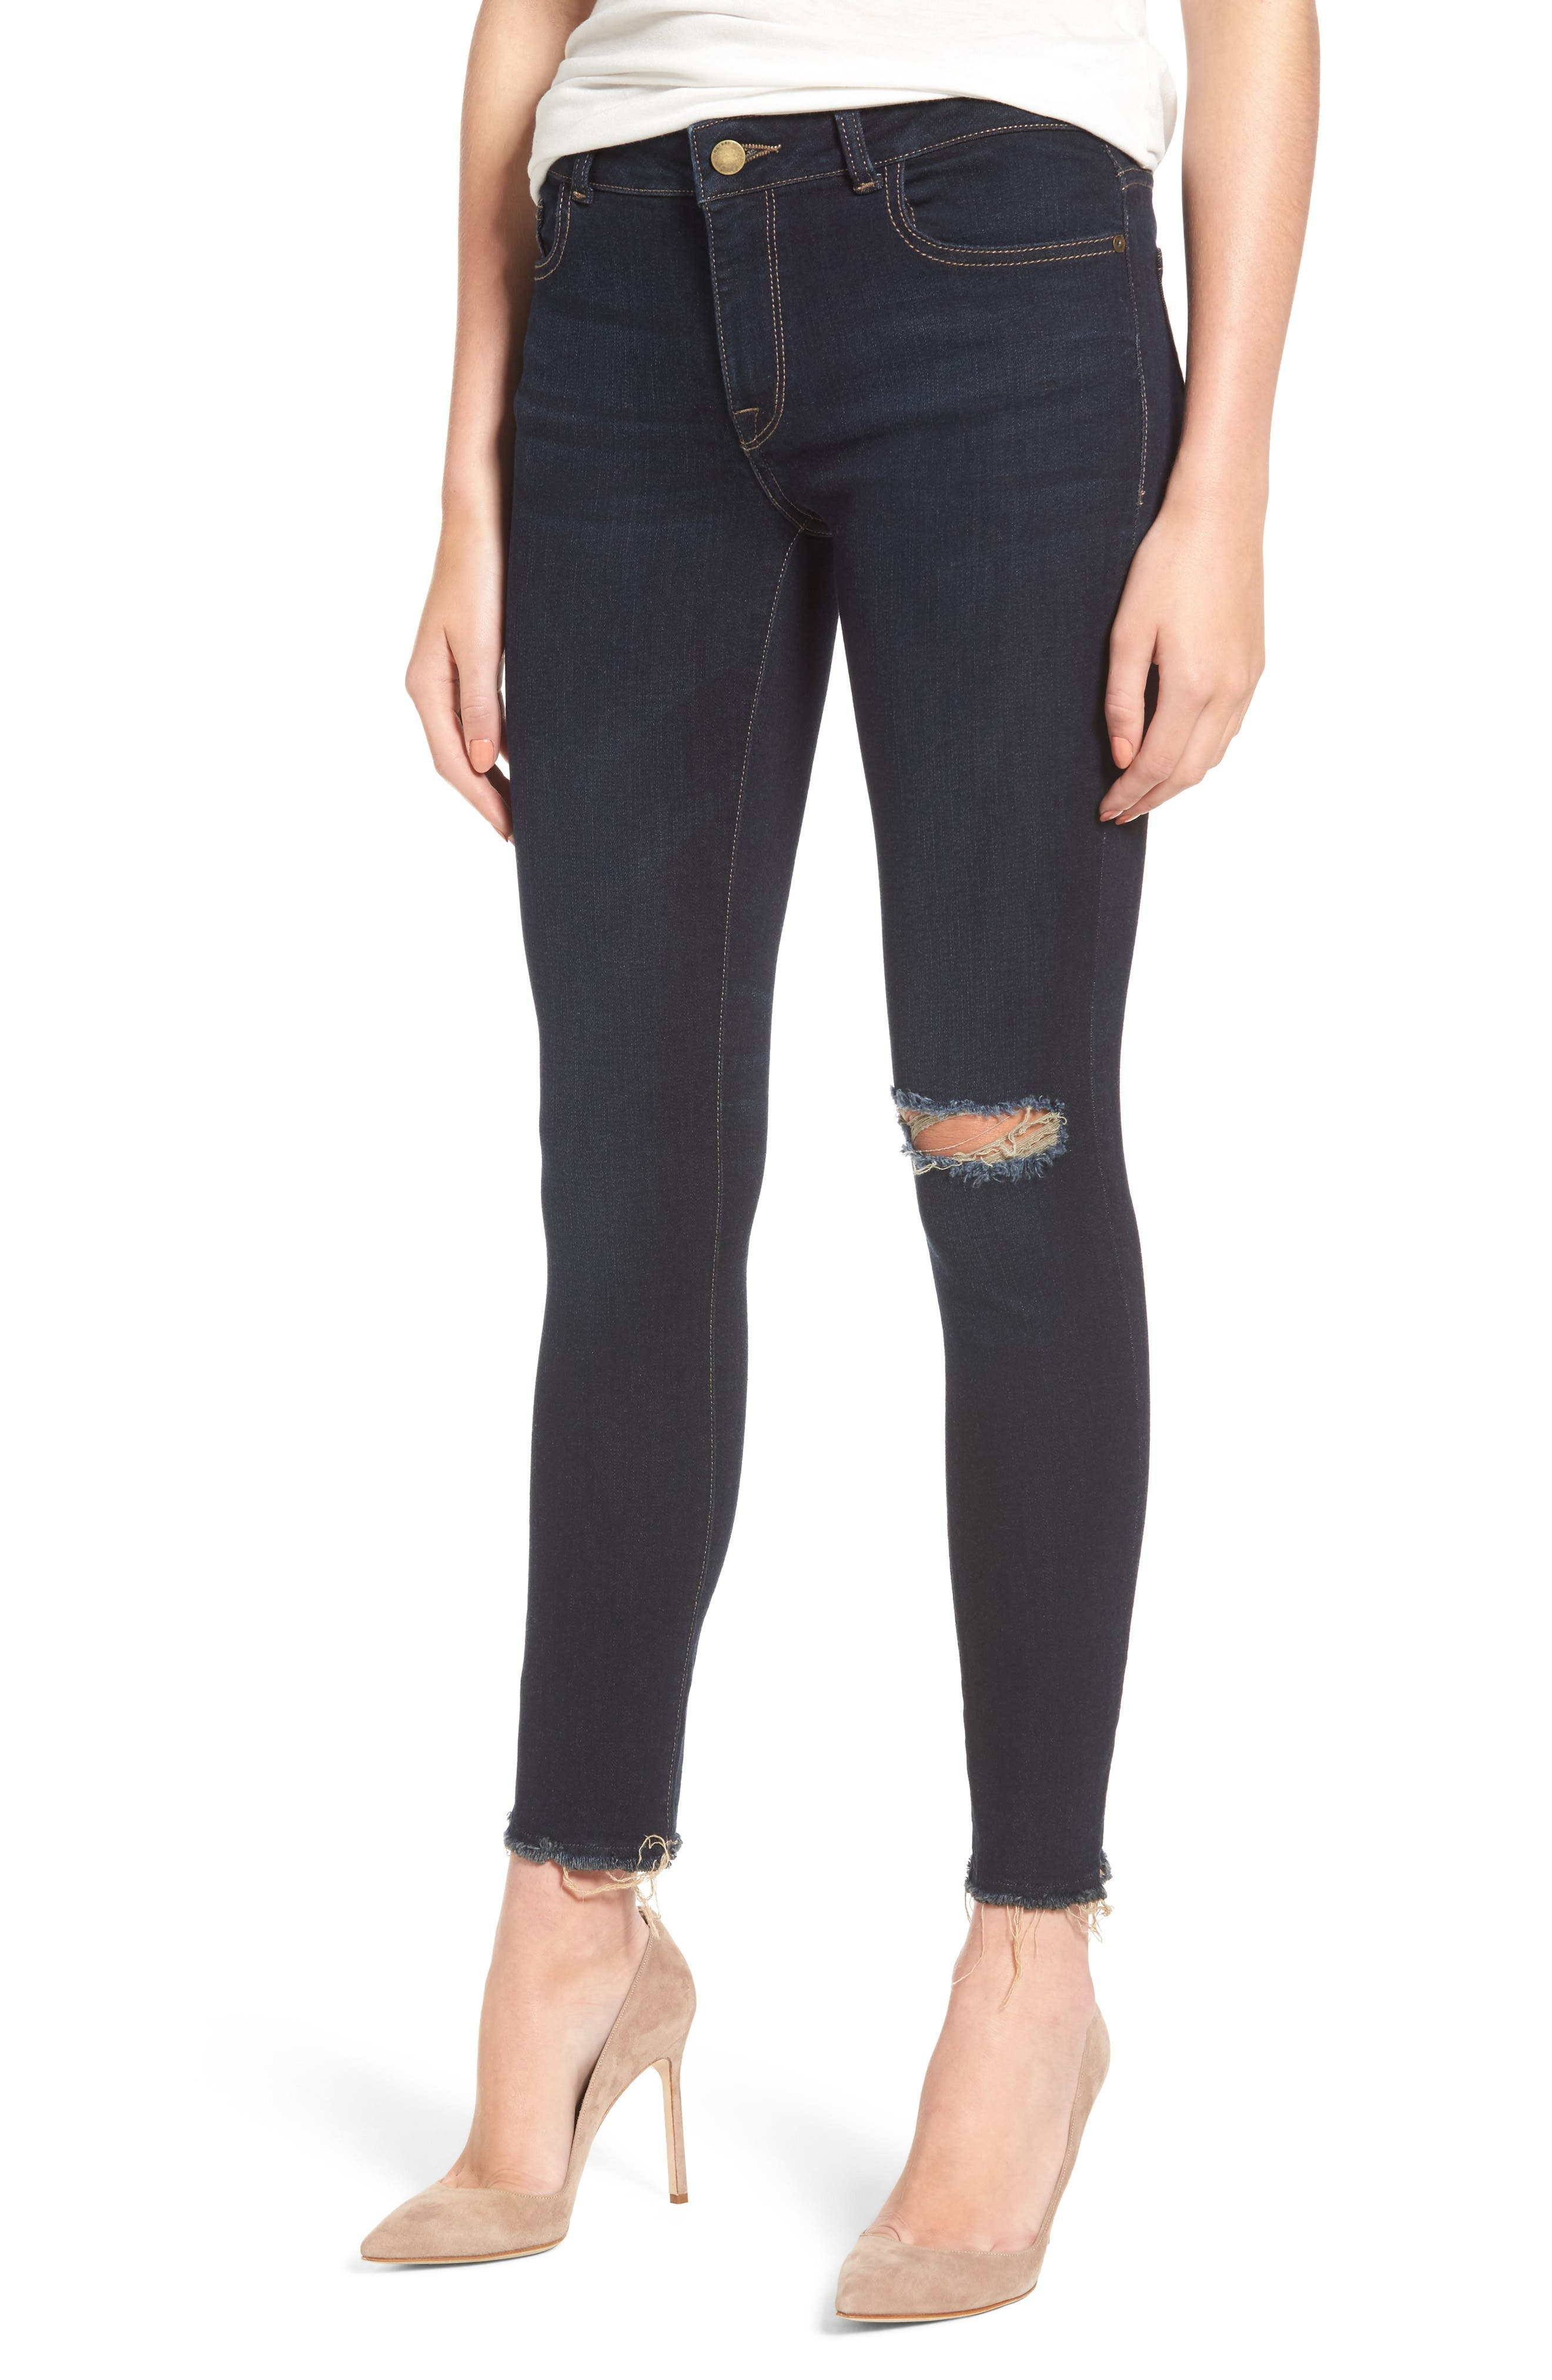 Margaux Instasculpt Ripped Ankle Skinny Jeans,                             Main thumbnail 1, color,                             025